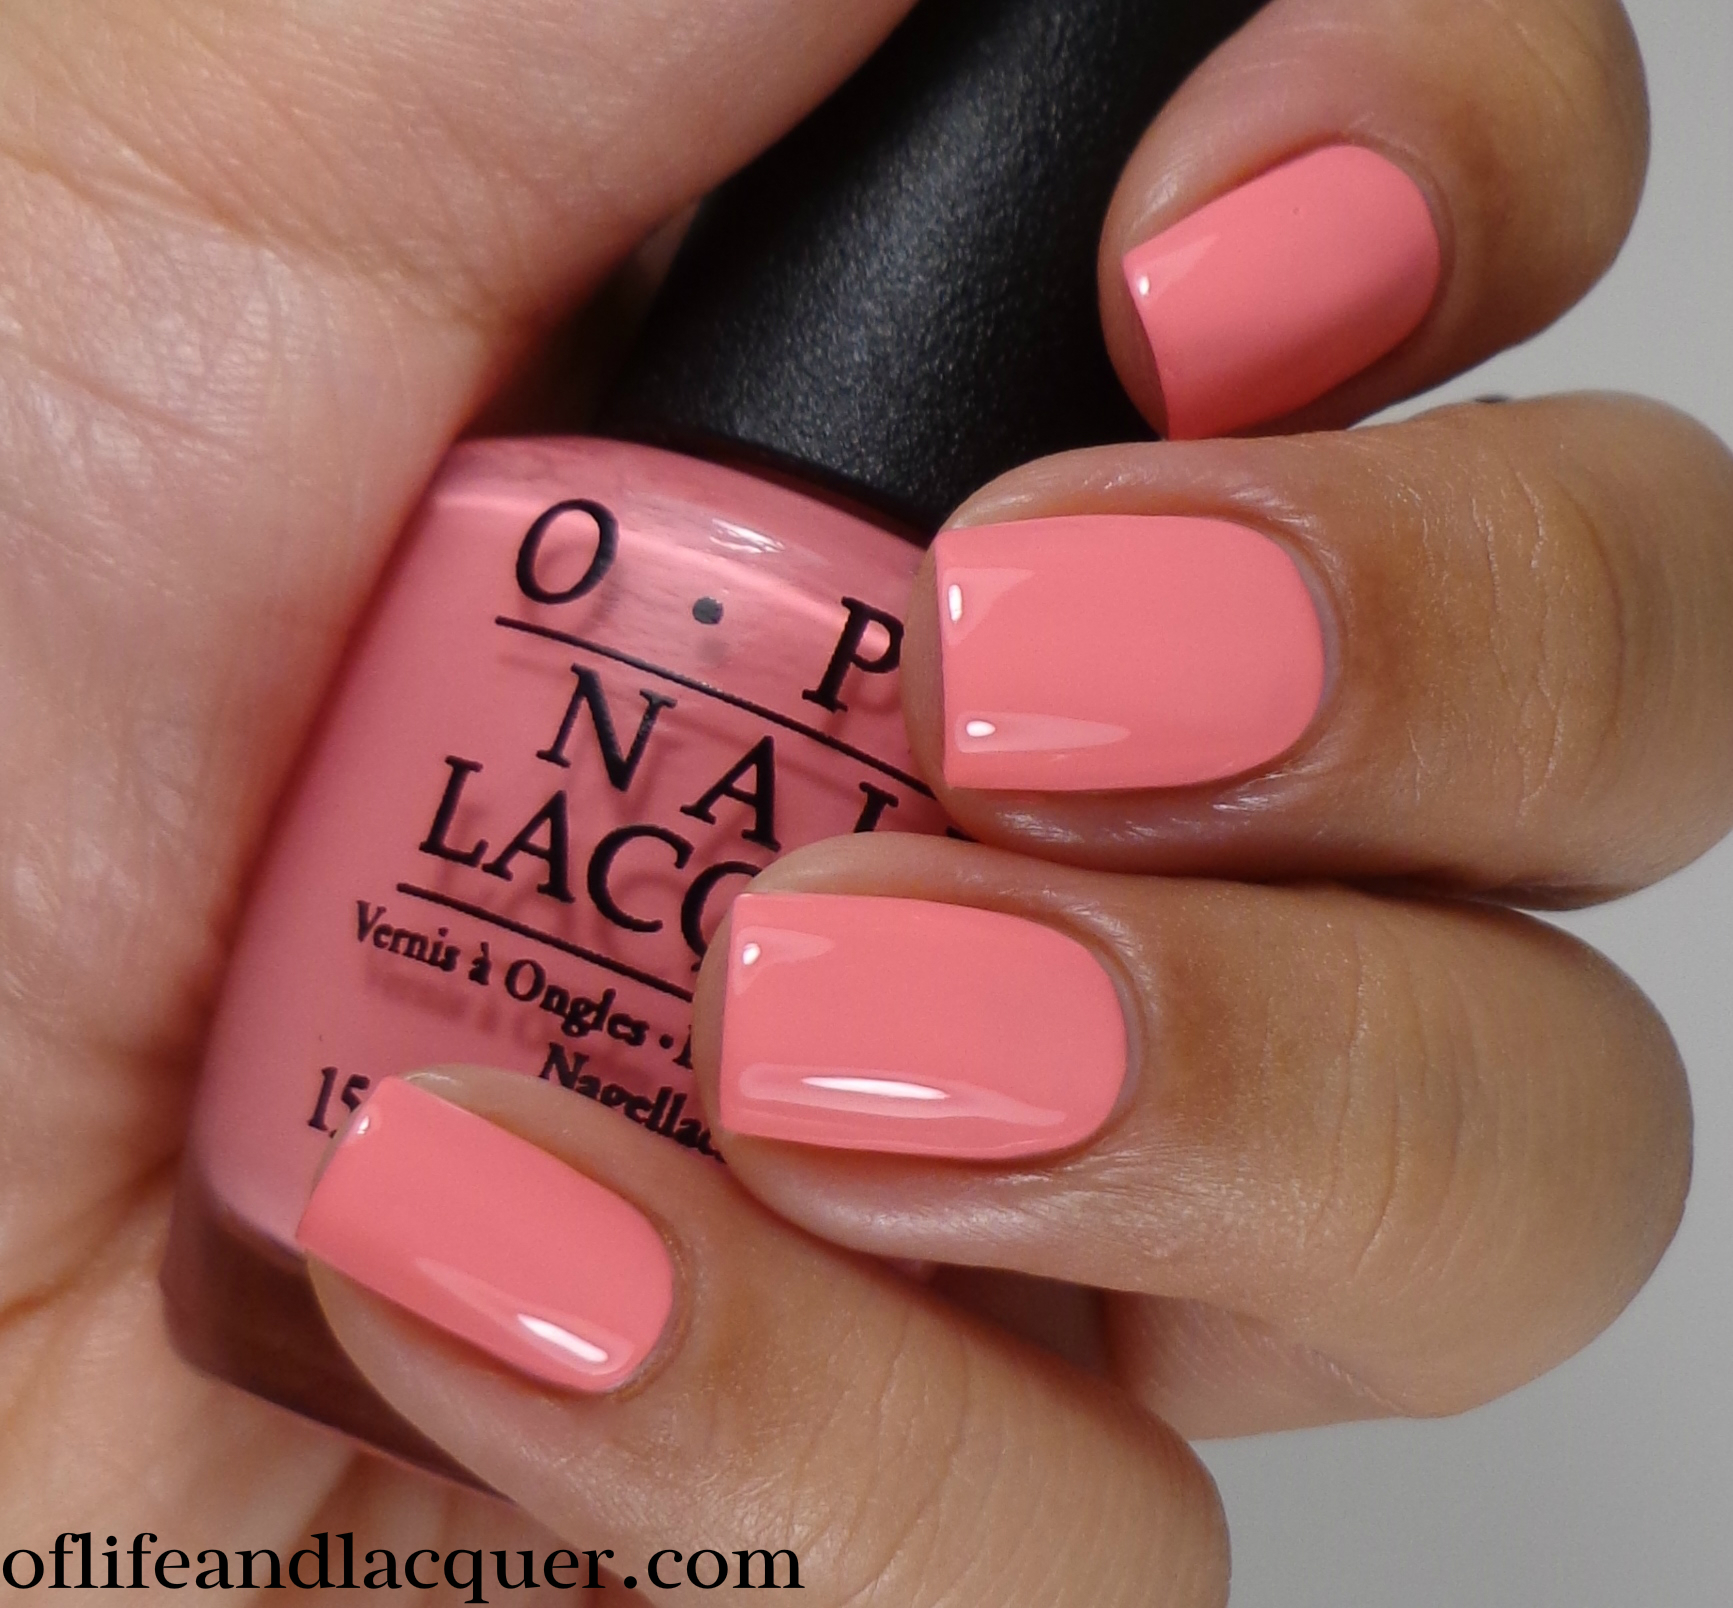 OPI Brazil Collection Spring/Summer 2014 - Of Life and Lacquer